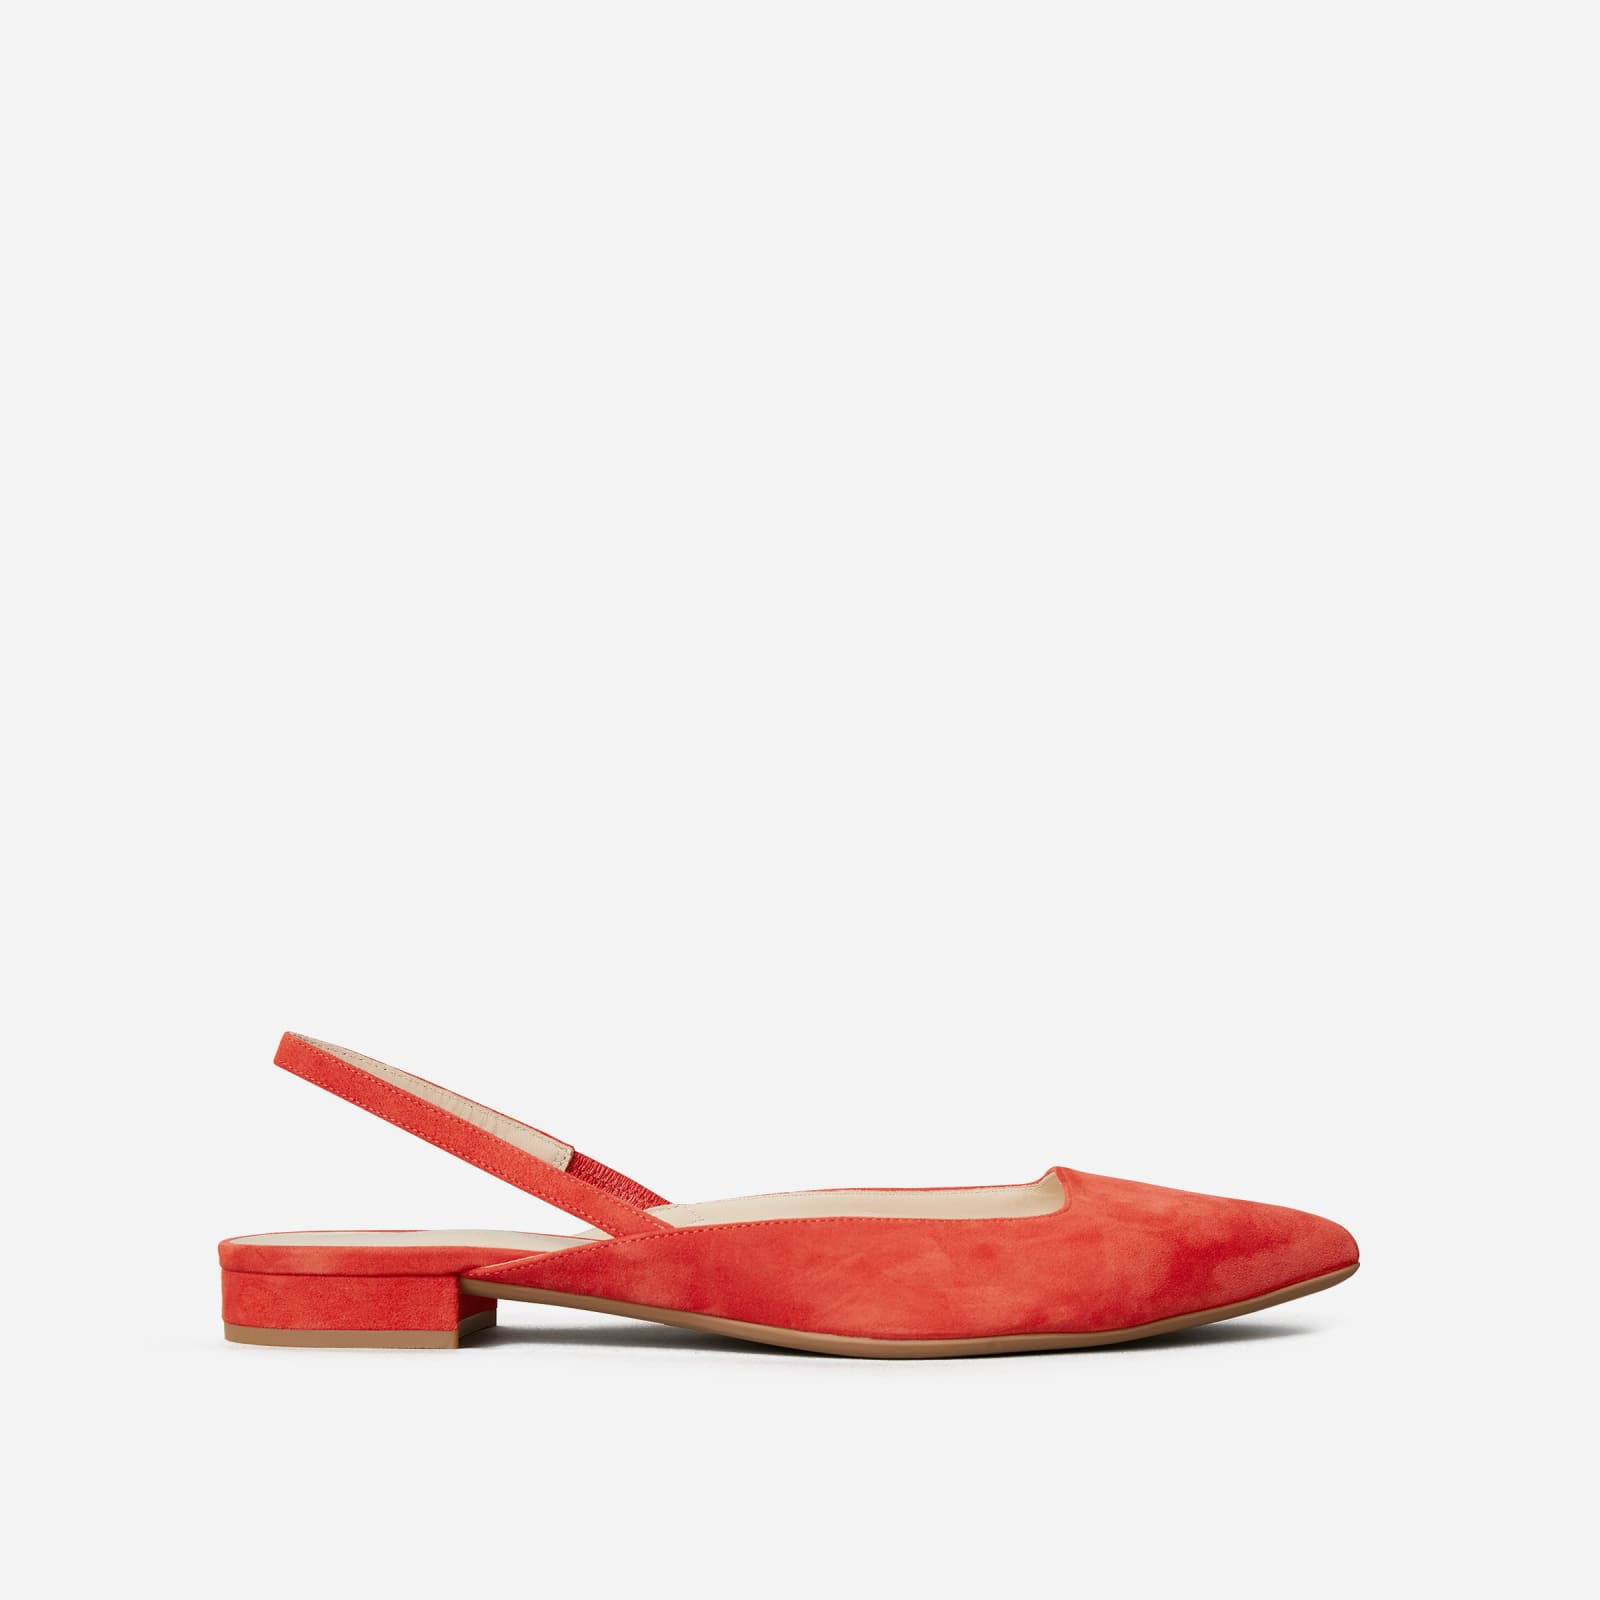 editor slingback by everlane in persimmon suede, size 5